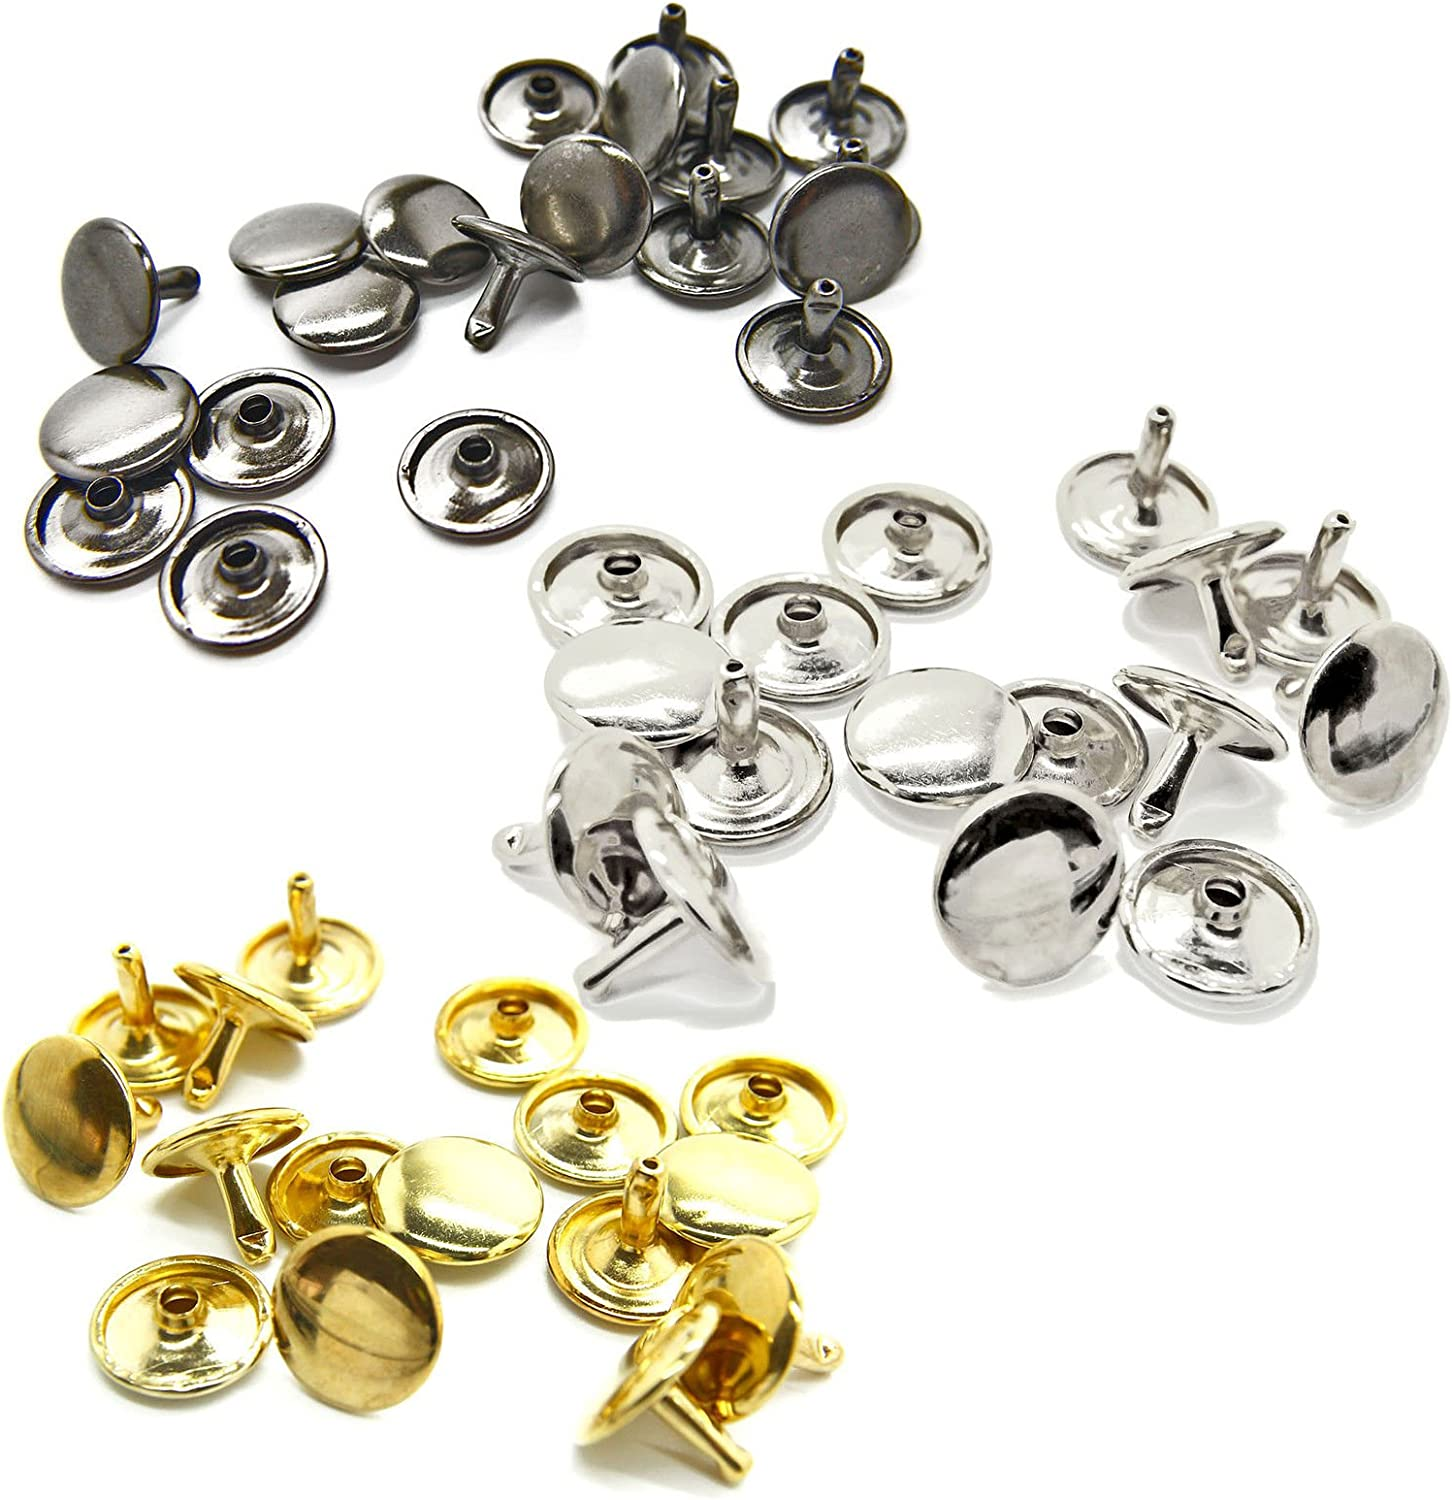 Wedding Decor 100pcs x 12mm Silver Double Cap Rivets Two Piece for Leather Crafts Clothing Fabric Repair Work